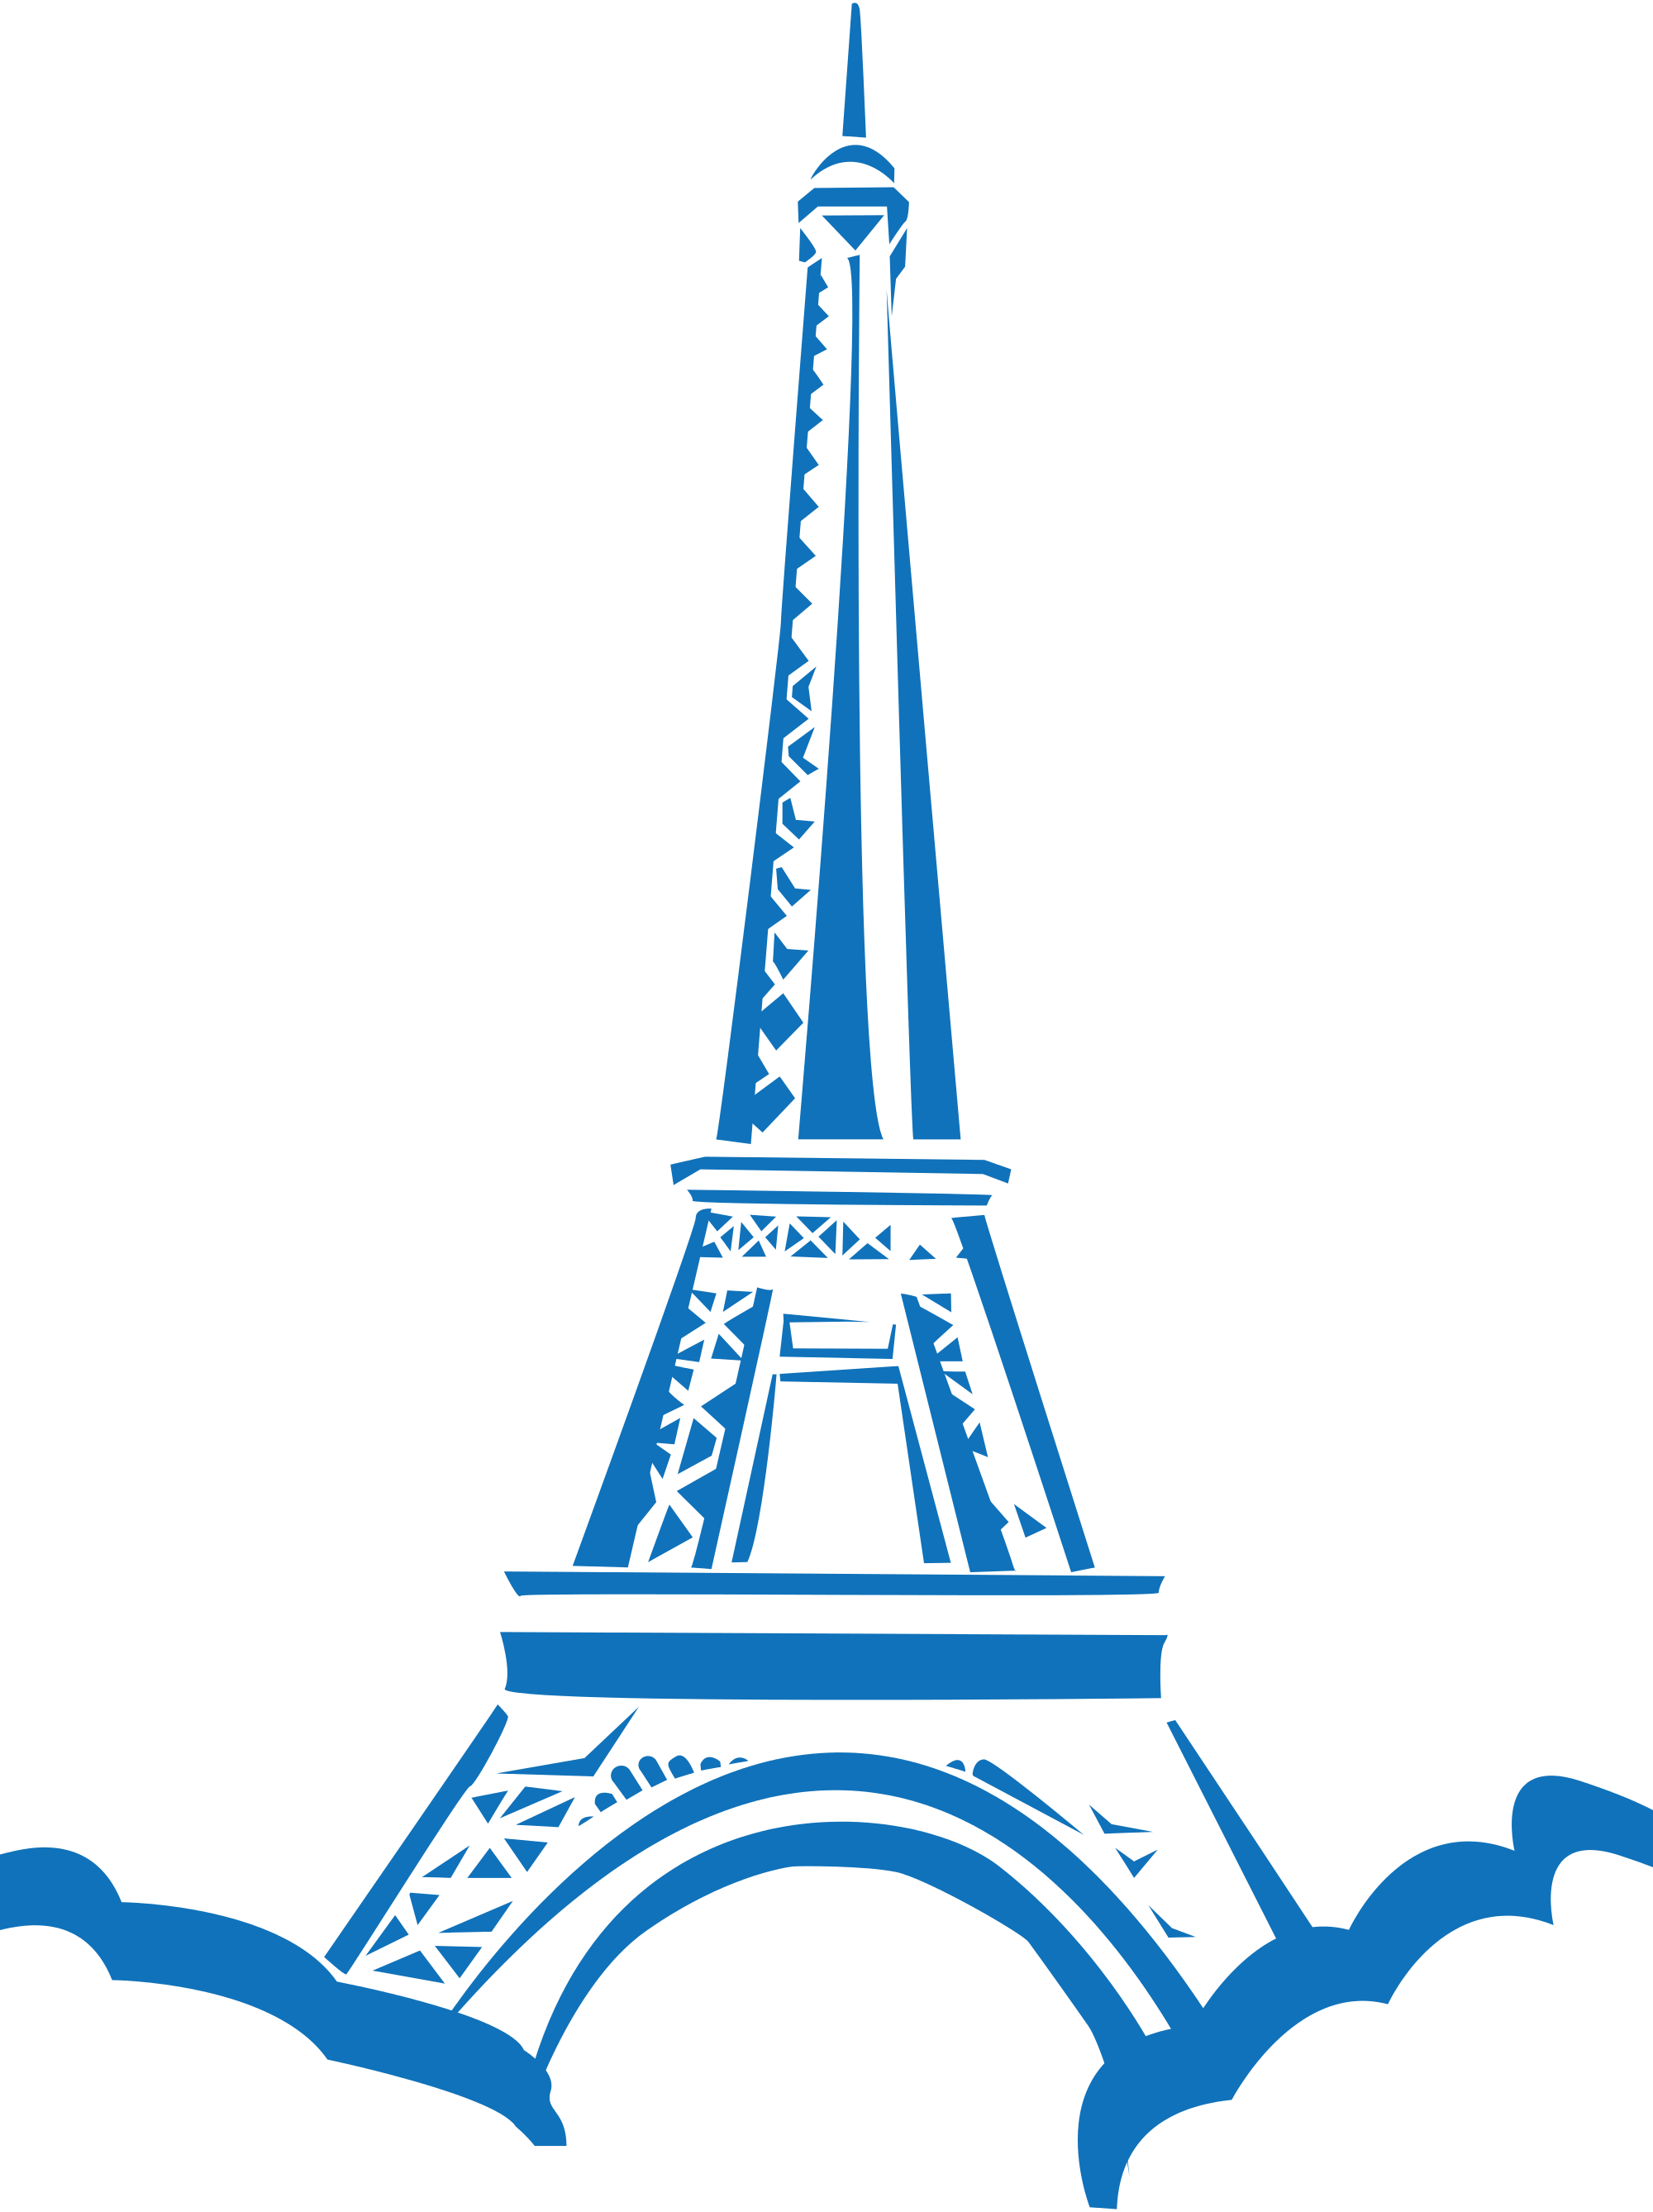 Eiffel Tower svg #9, Download drawings